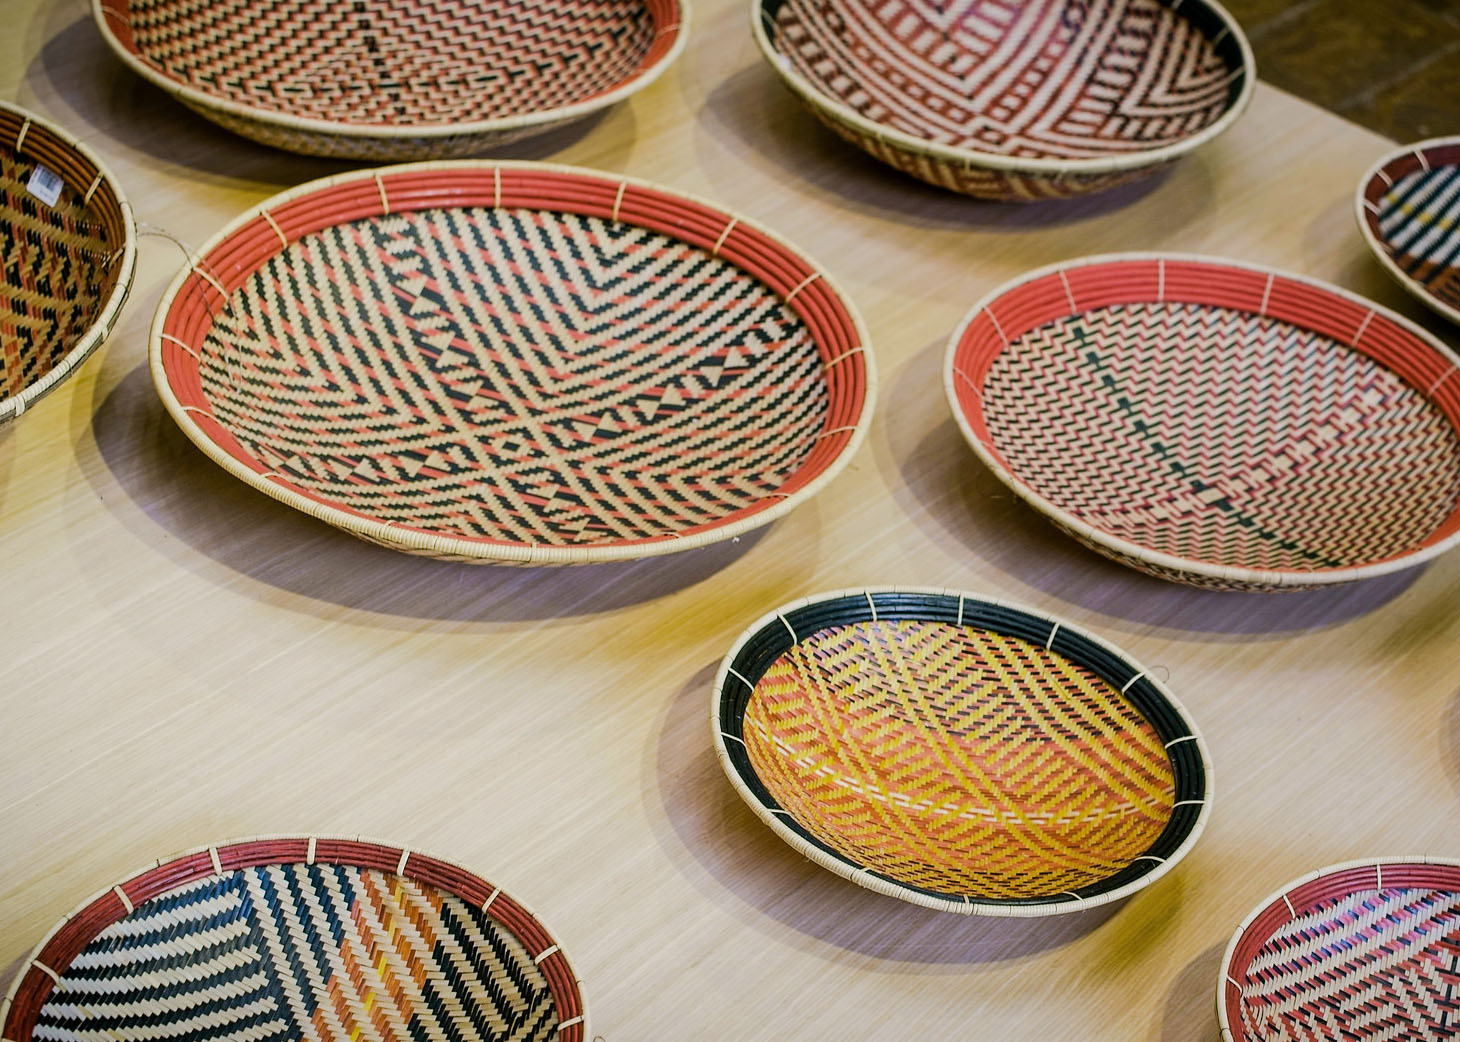 Colombia S Largest Arts And Crafts Fair Expoartesanias Opens With